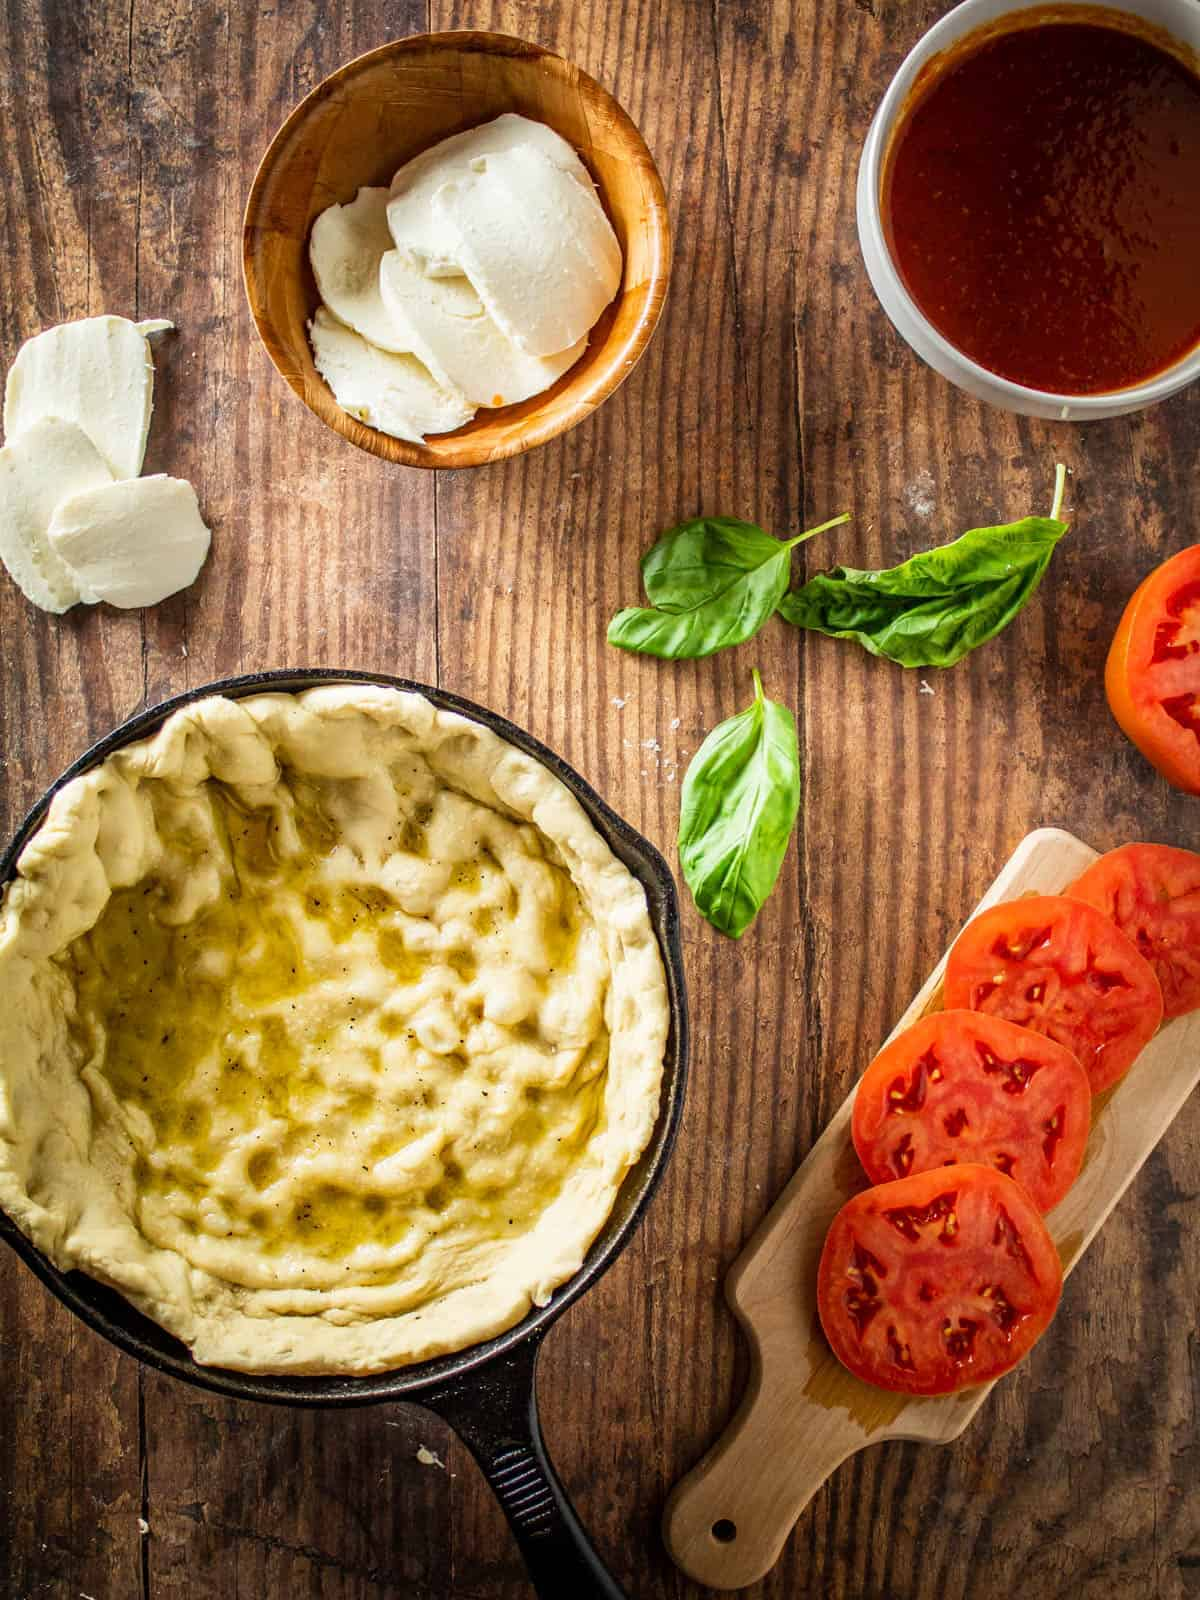 cast iron pizza crust next to cheese, tomatoes and basil